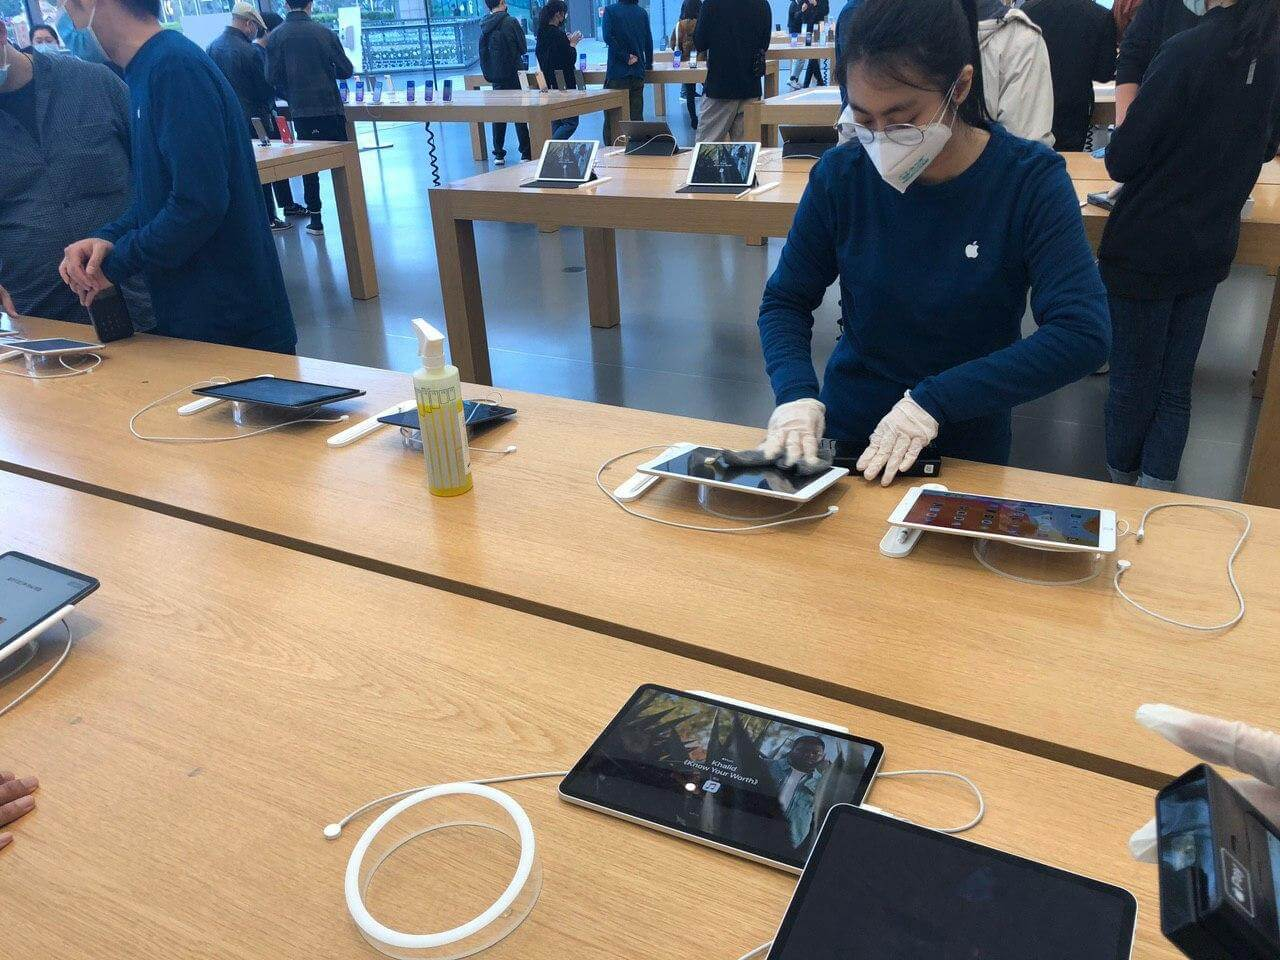 After each visitor, the devices they touch are treated with a disinfectant solution